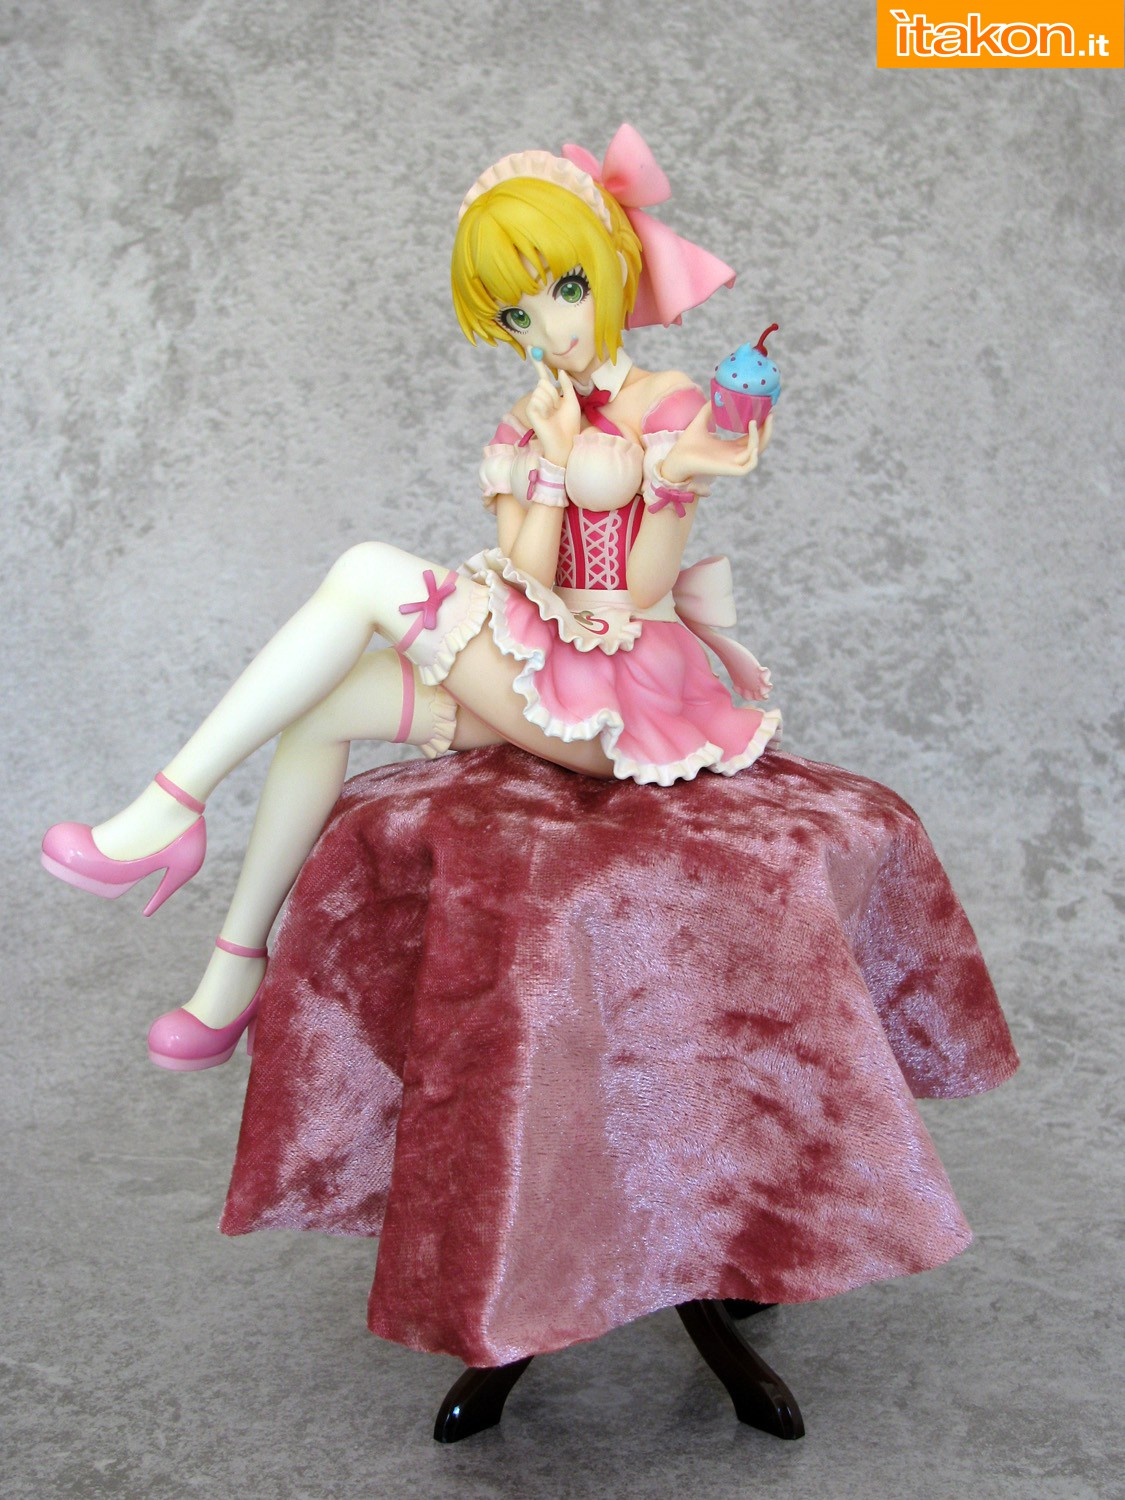 Link a 005 Frederica Miyamoto Little Devil Maid Phat recensione